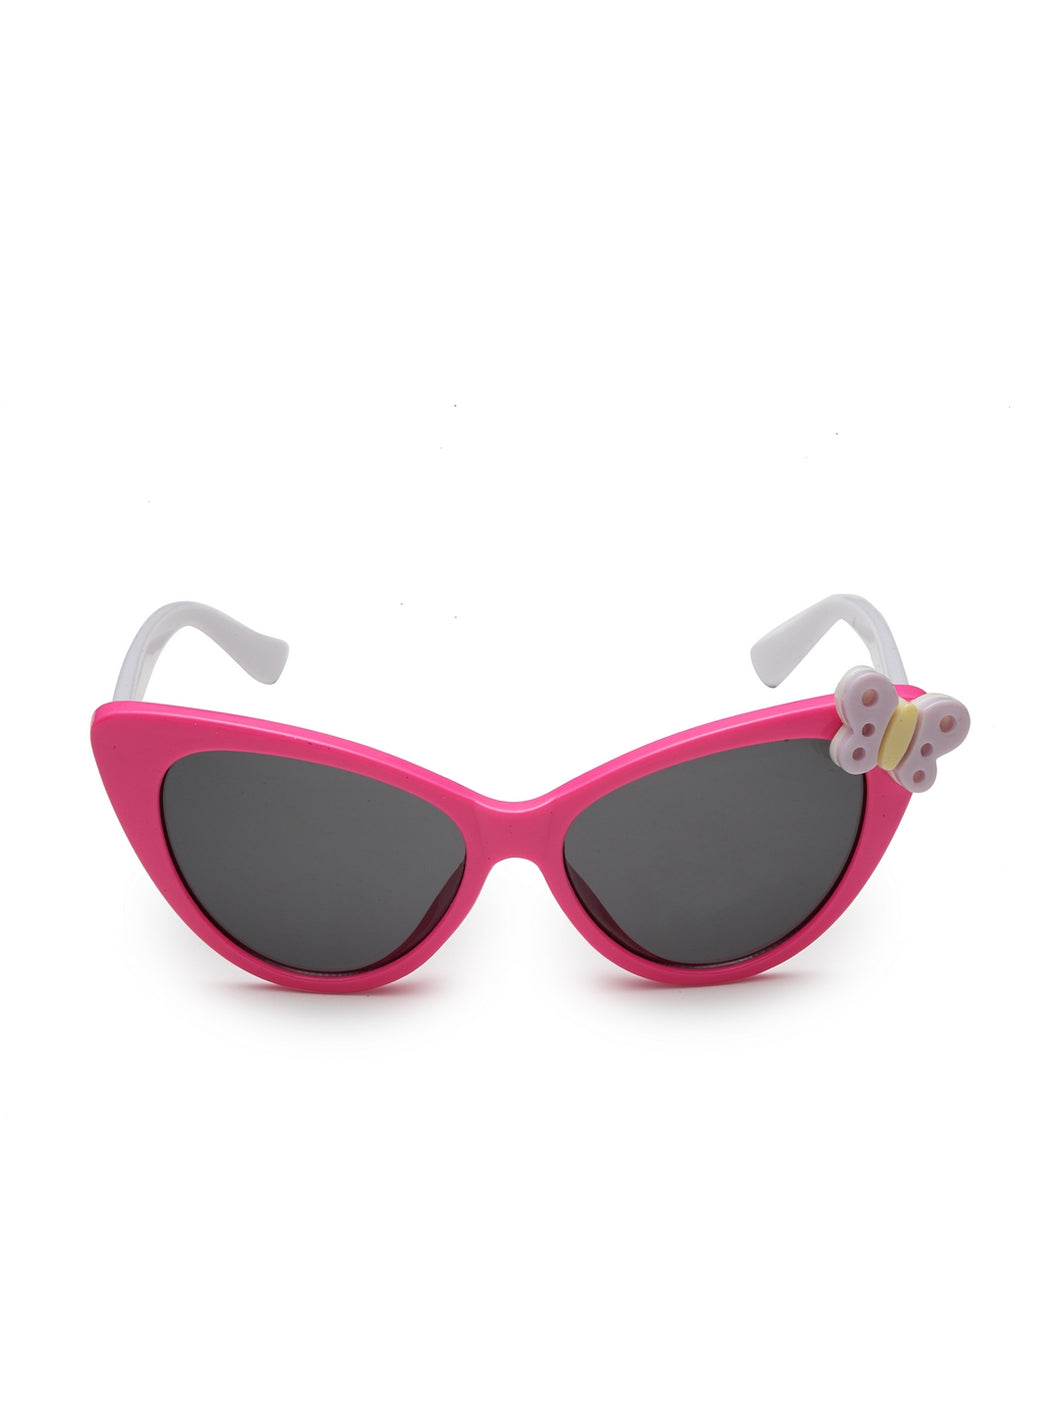 Stol'n Premium Attractive Fashionable UV-Protected Cat Eye Sunglasses  - Pink